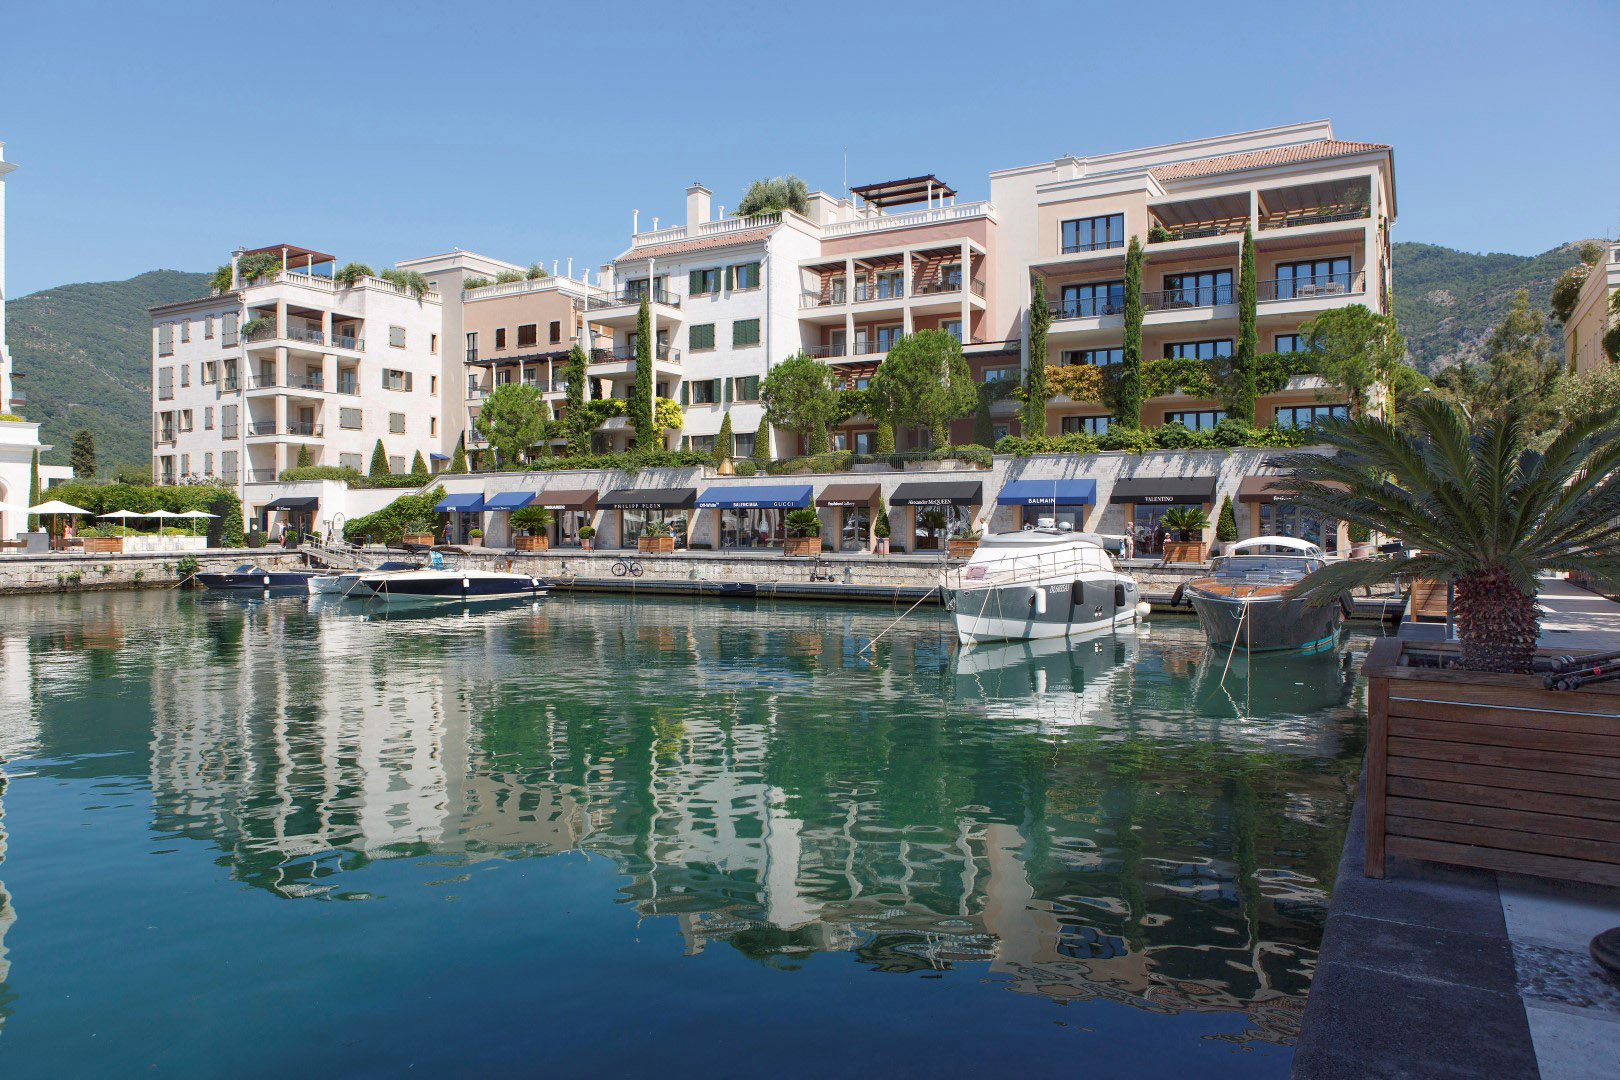 Tivat, Porto Montenegro- one bedroom apartment with sea views, Tara building